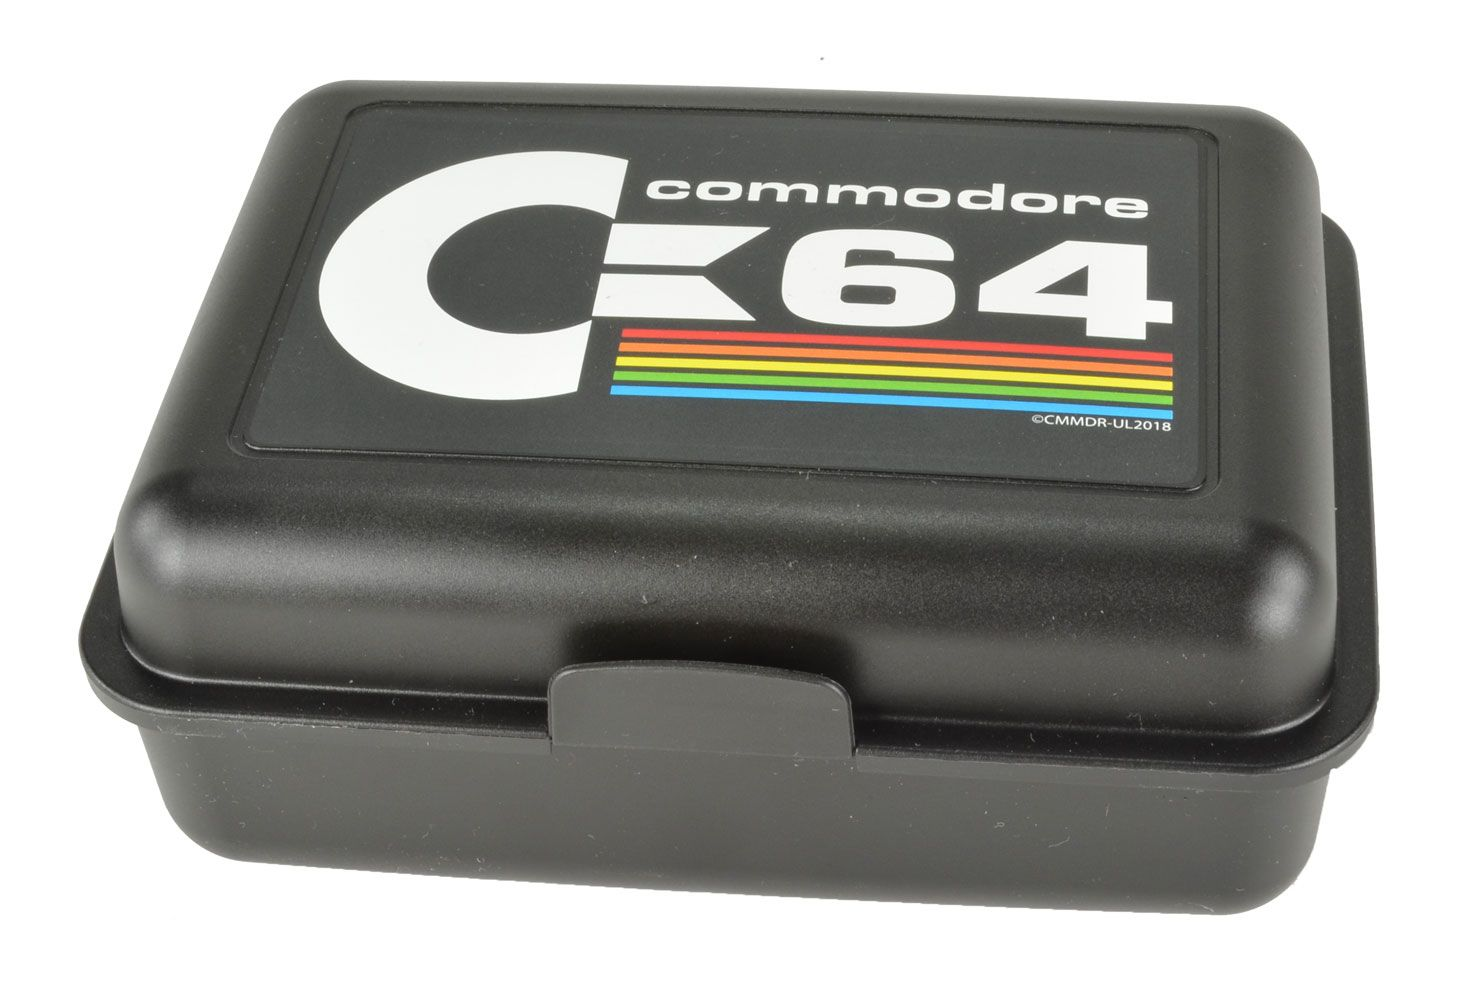 Commodore 64 Lunch Box Logo